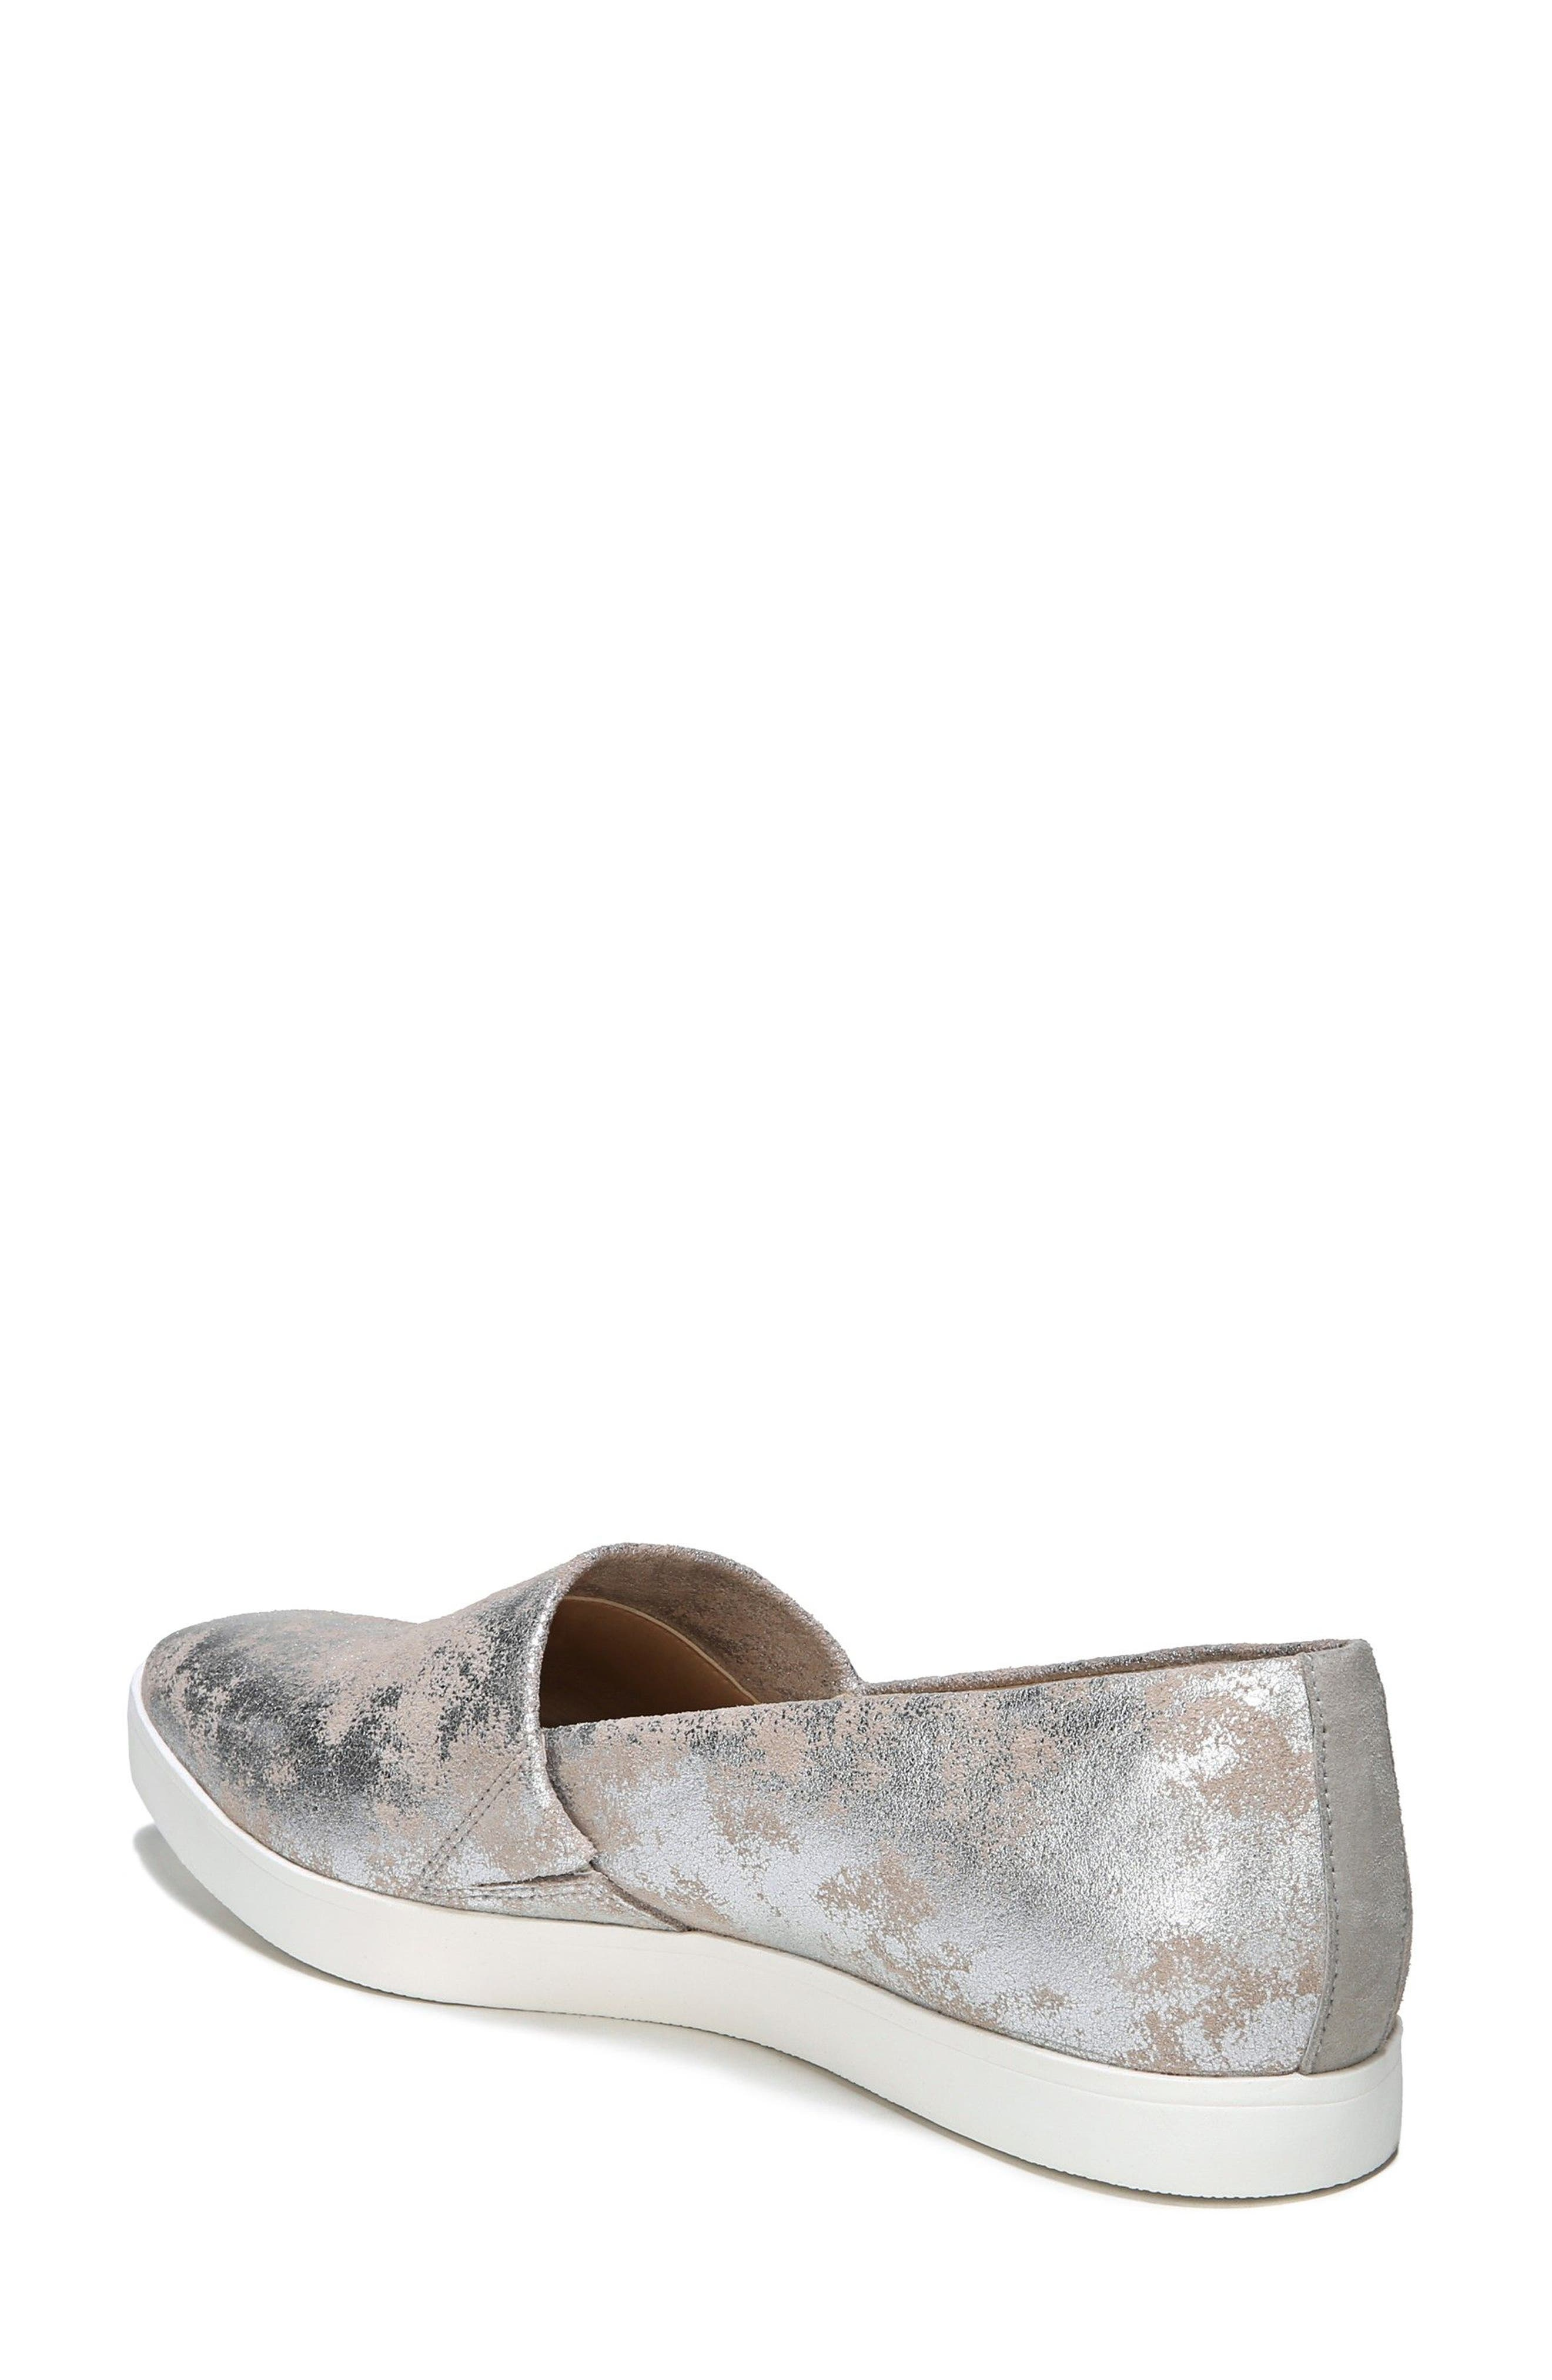 'Vienna' Slip-on Sneaker,                             Alternate thumbnail 2, color,                             Silver Leather